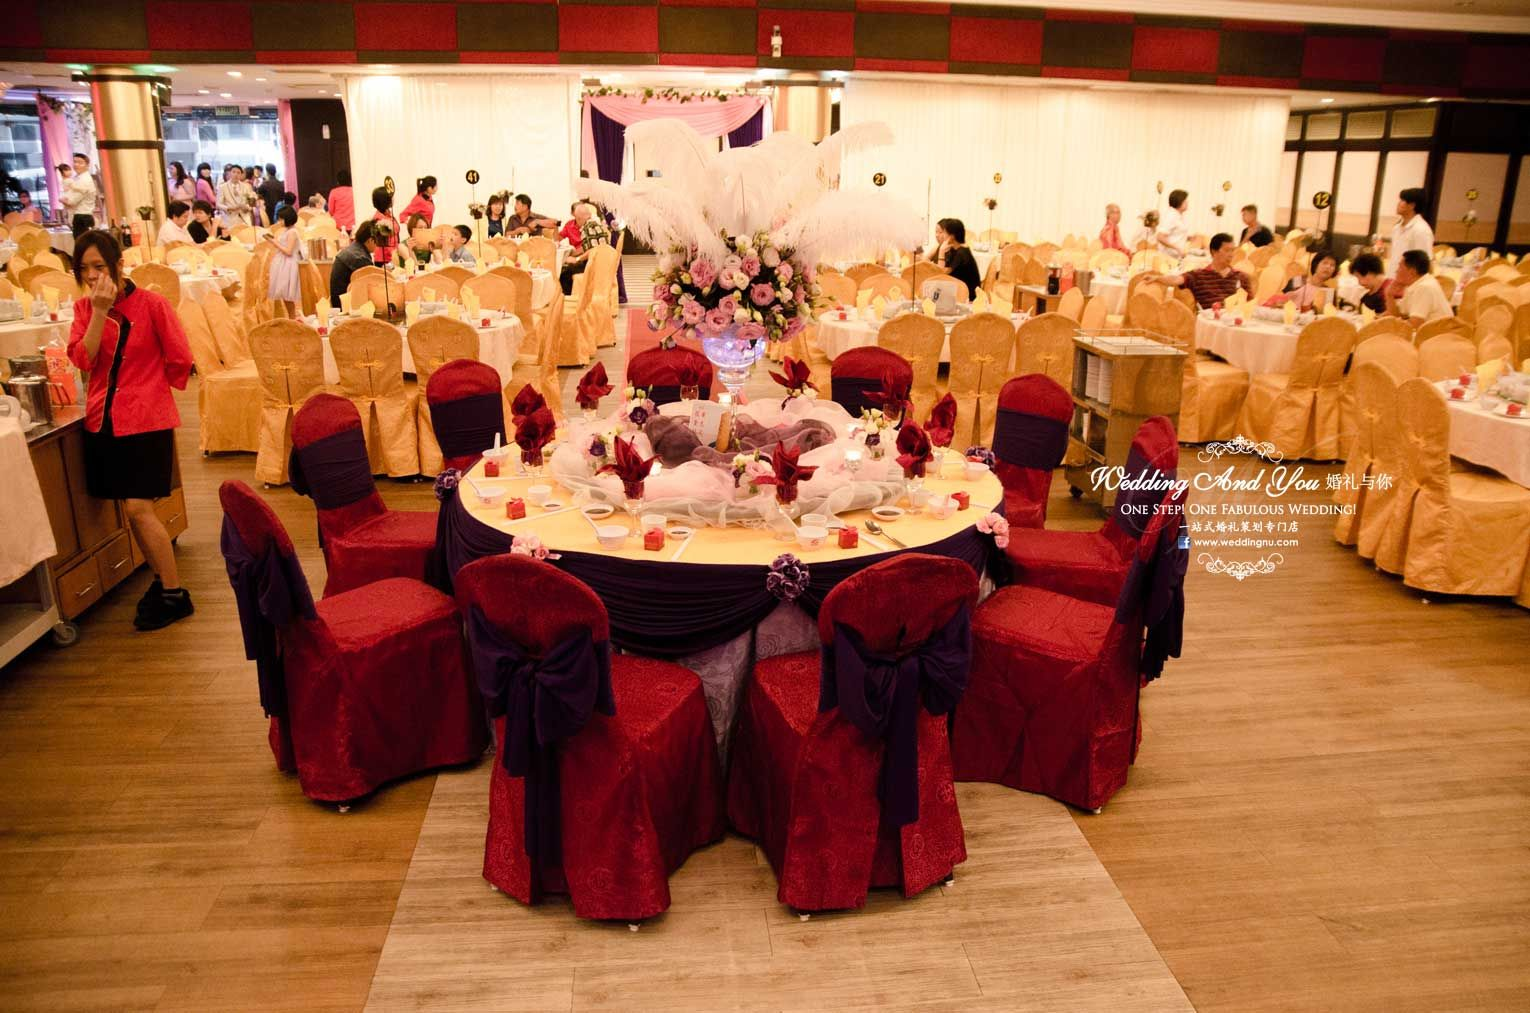 Add To Board VIP Table Setting by Wedding And You - 001 & VIP Table Setting by Wedding And You | Bridestory.com